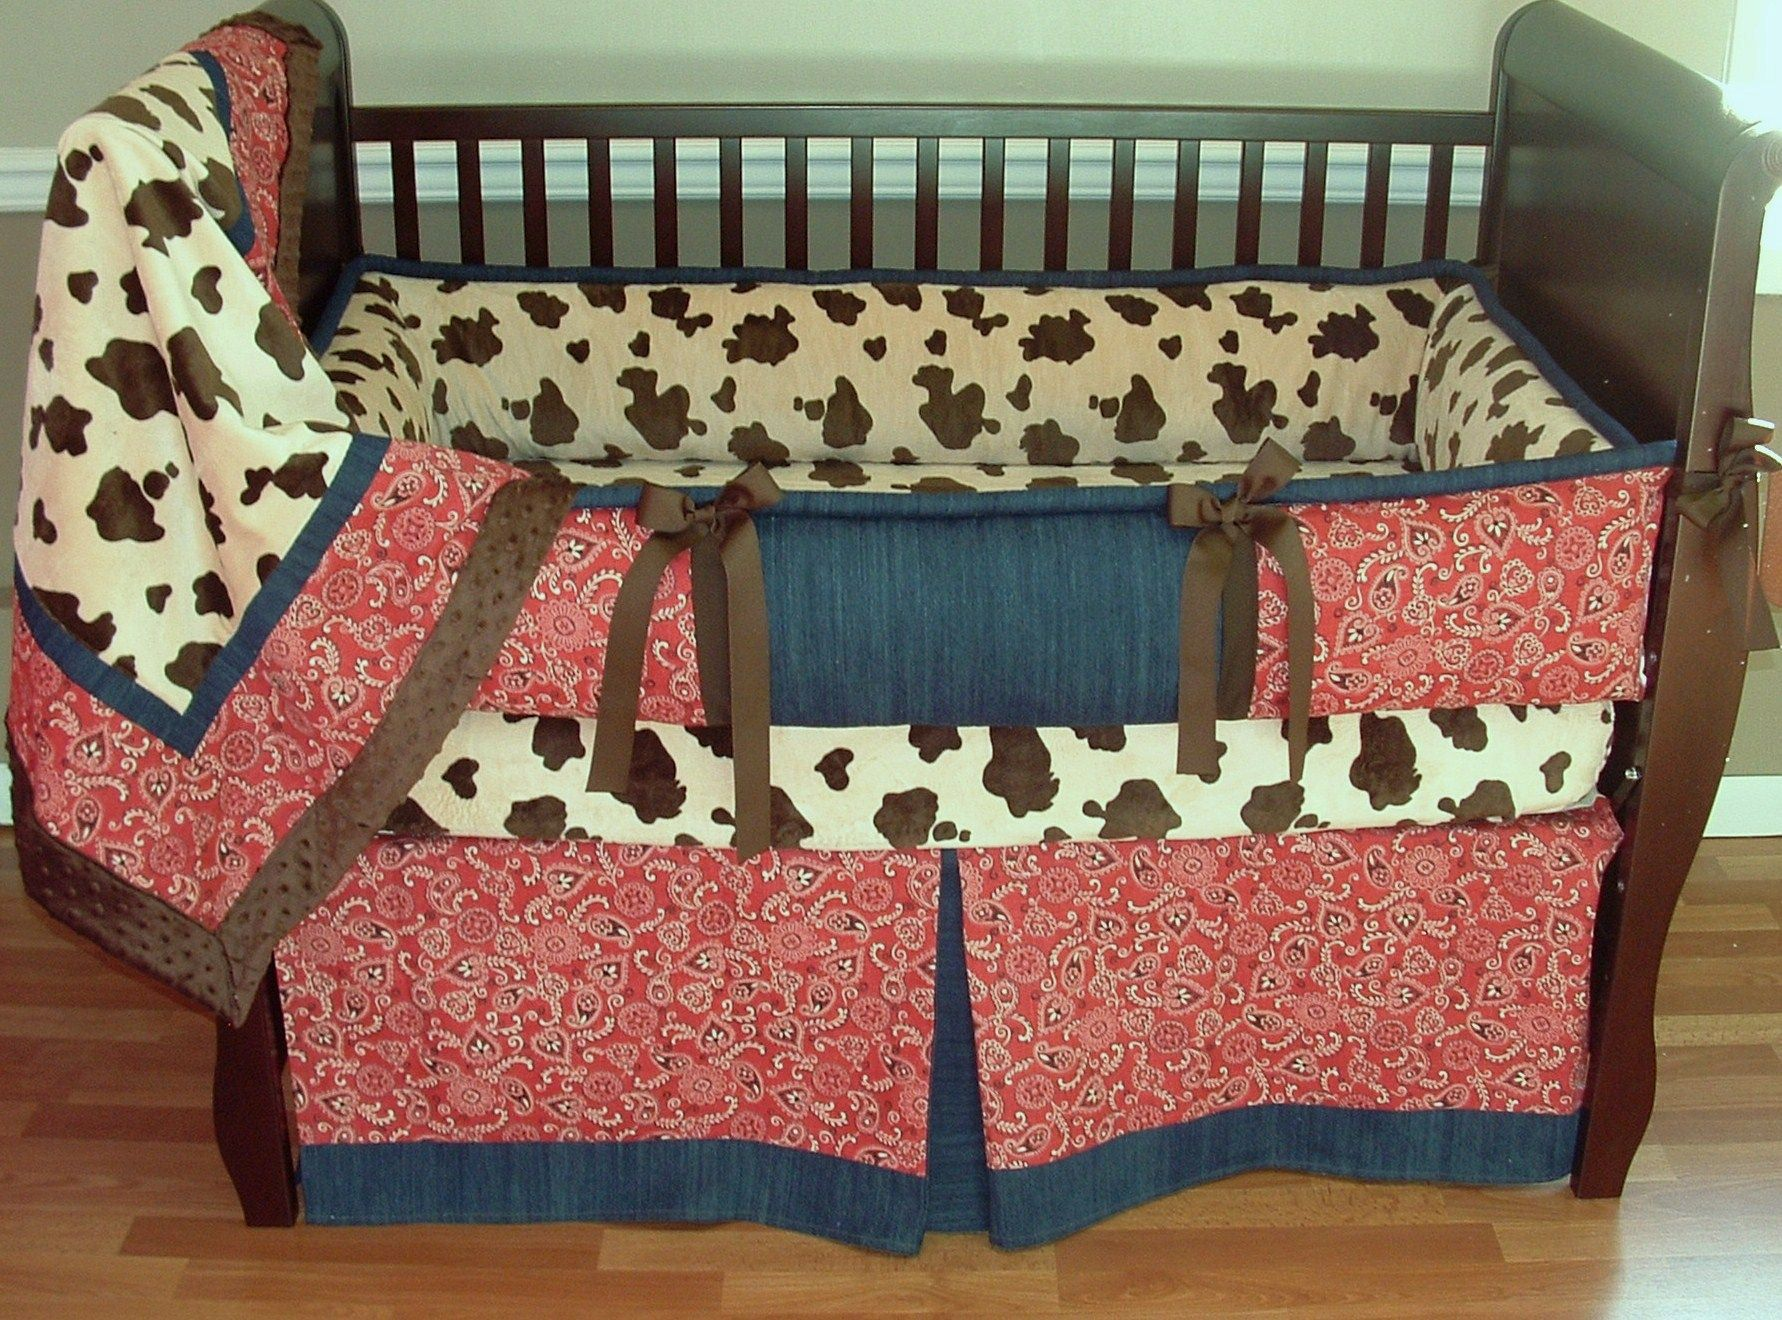 Giddy Up Cowboy Baby Bedding This Set Includes The Per Blanket And Skirt Sheet May Be Subsuted For Or Added To